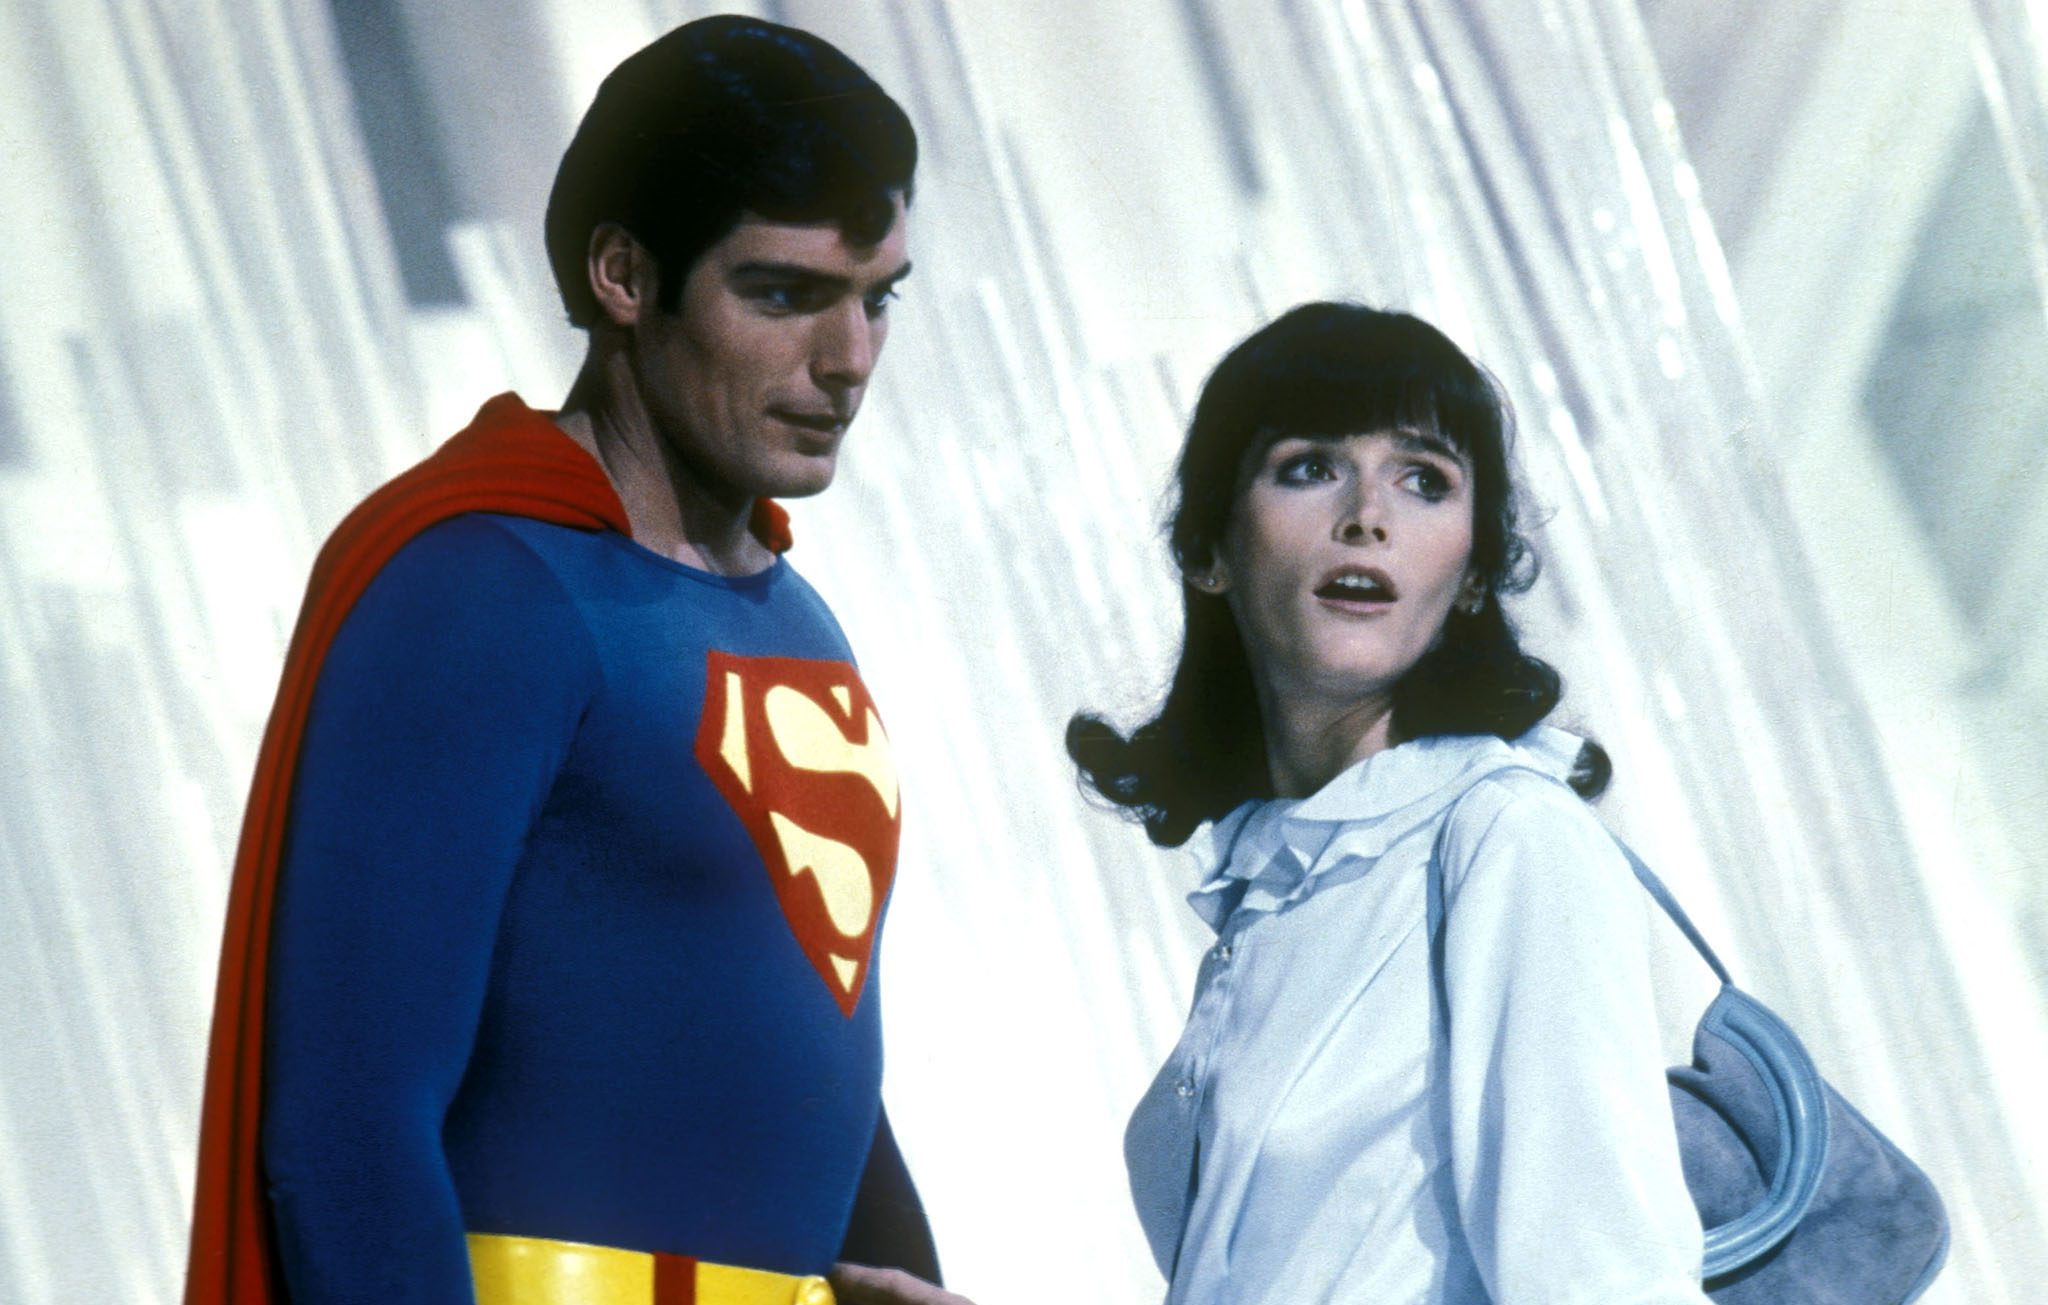 Solving the eternal love triangle - Superman (Christopher Reeve) introduces Lois Lane (Margot Kidder) to the Fortress of Solitude in Superman II (1980)